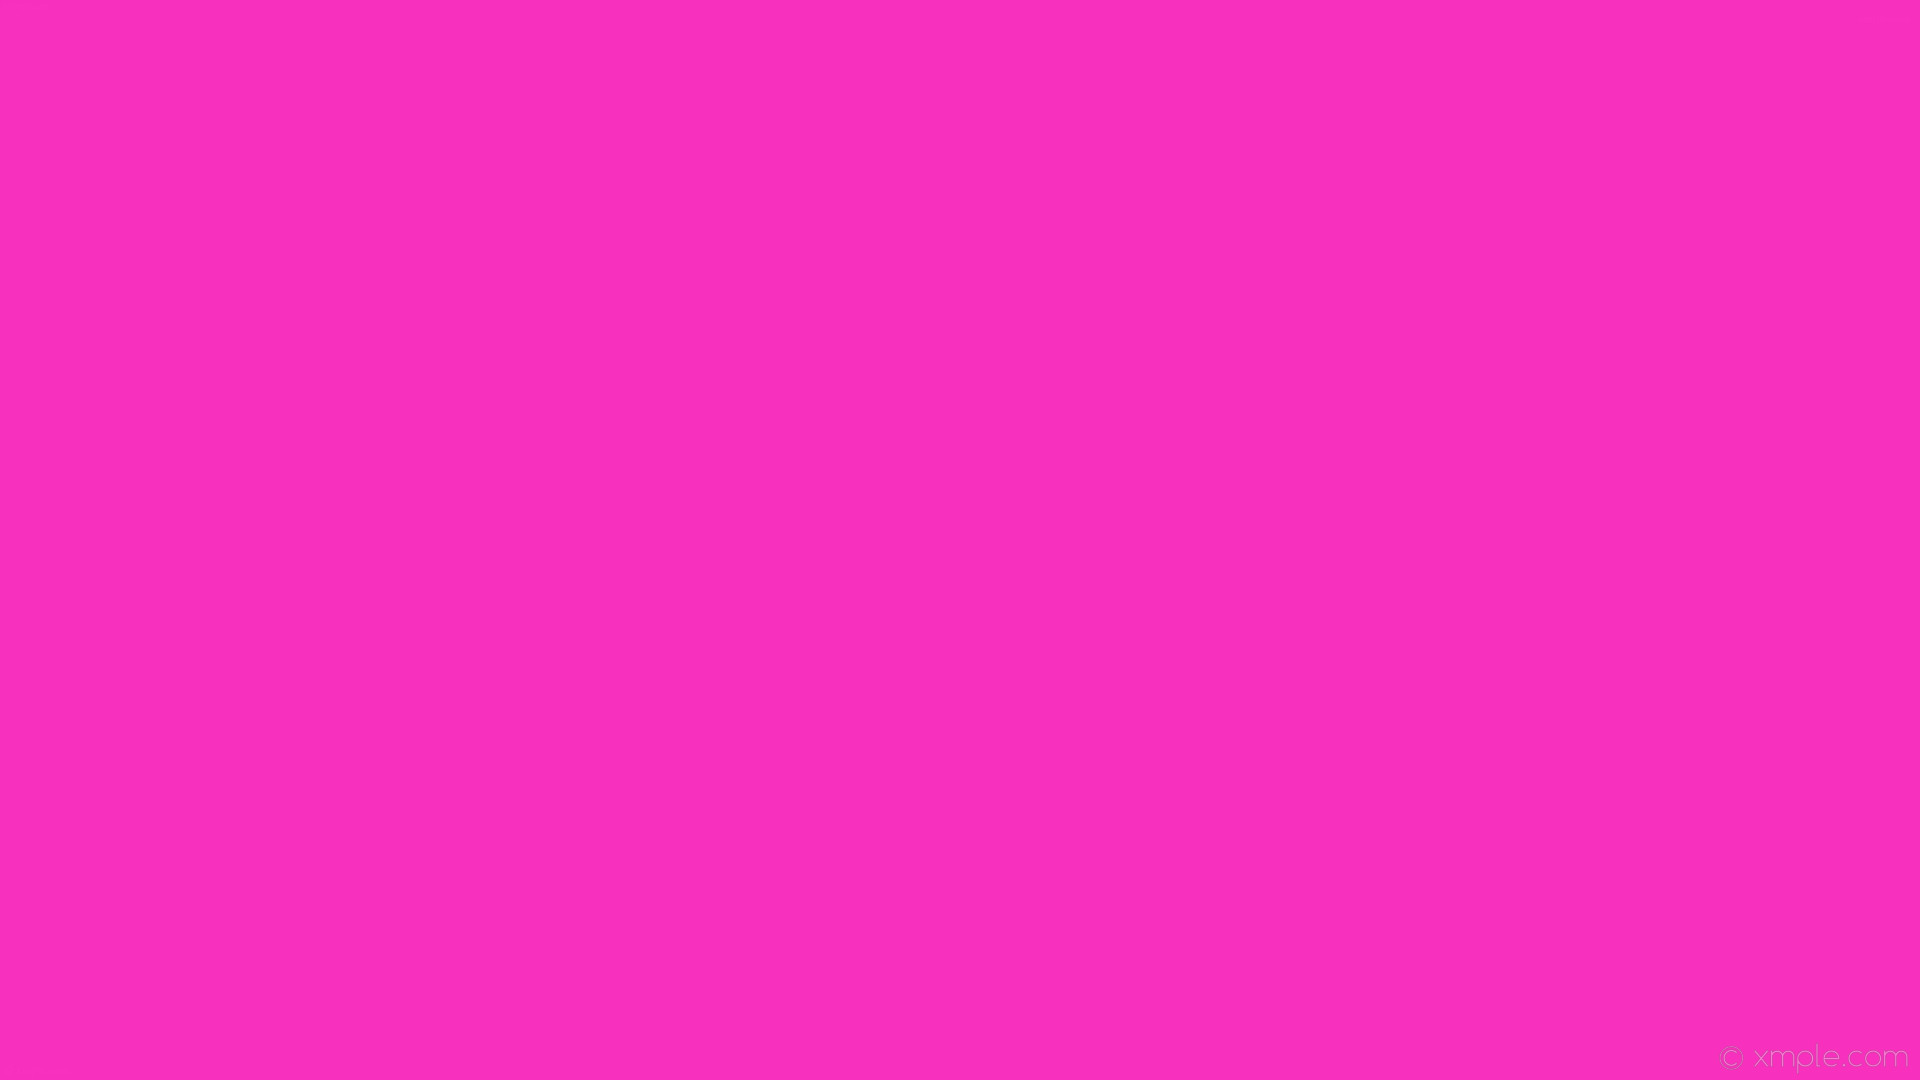 1920x1080 wallpaper pink single plain one colour solid color #f731be